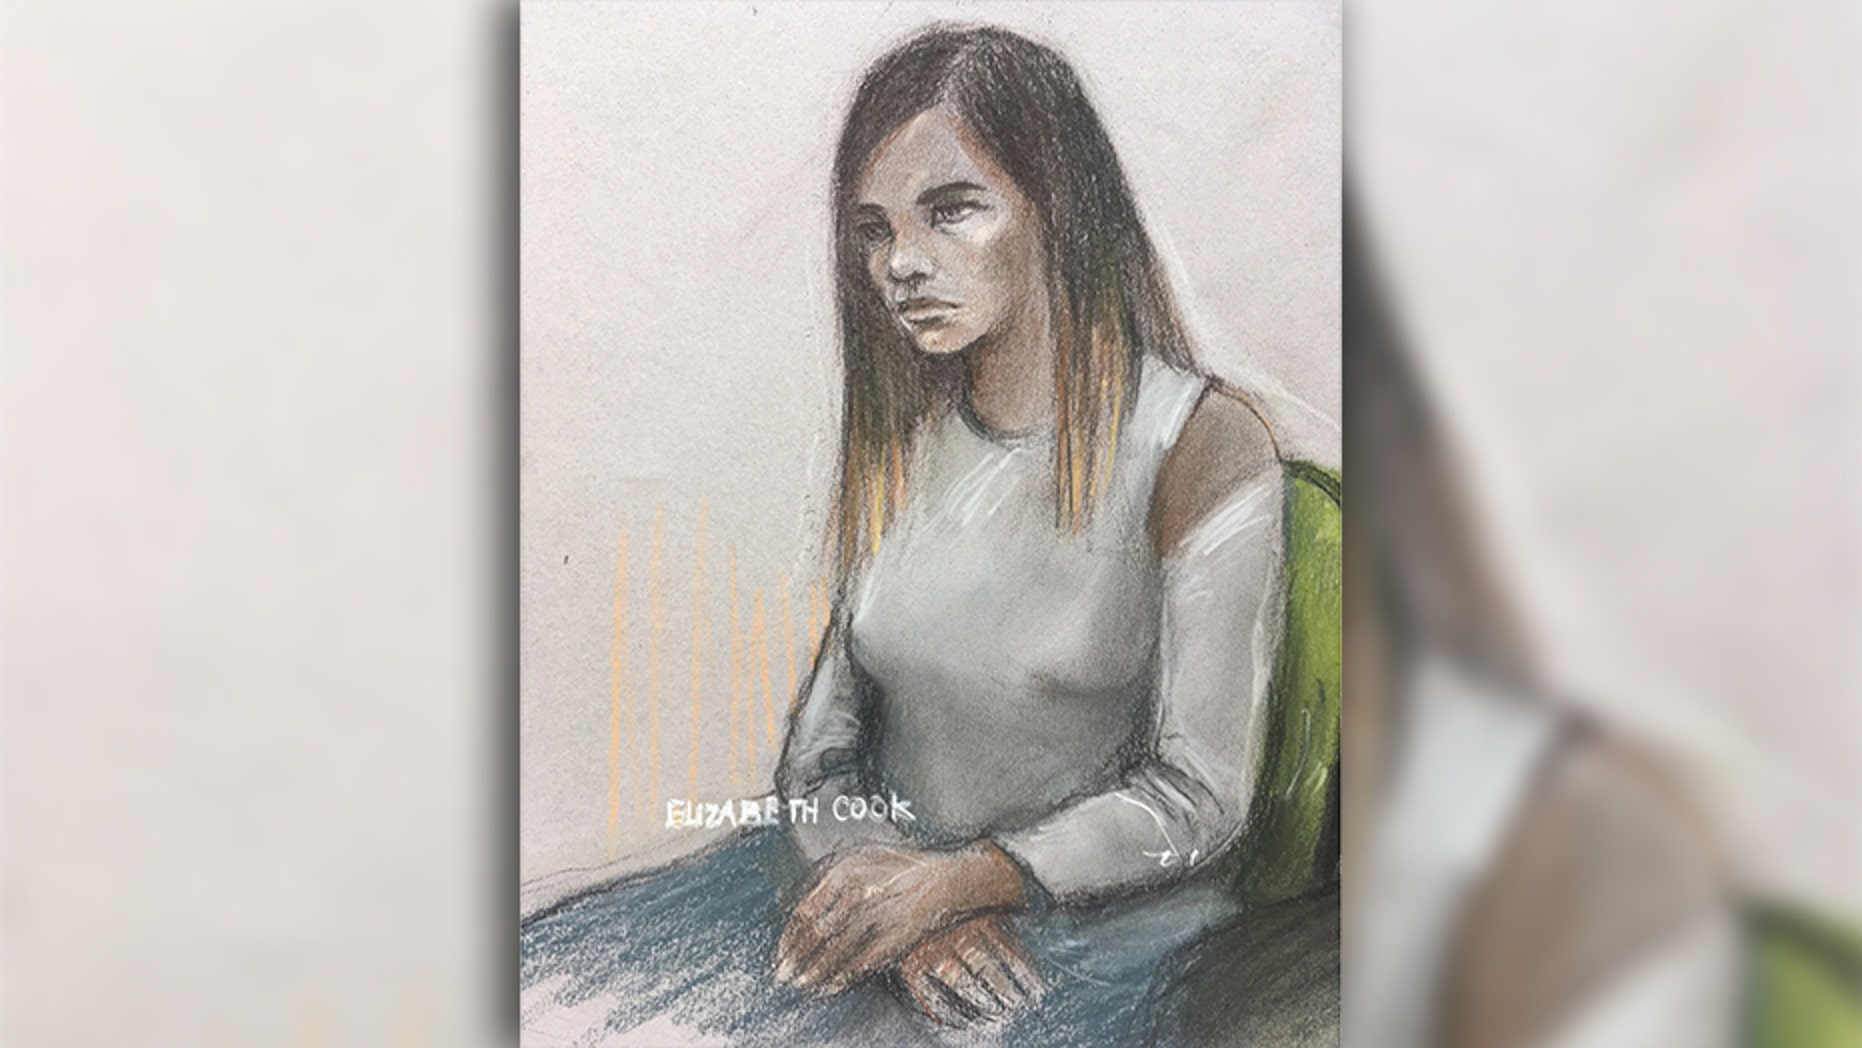 """Safaa Boular """"bonded"""" with an ISIS fighter over similar tastes in television shows and the two discussed how they would kill former President Barack Obama, a court has heard."""